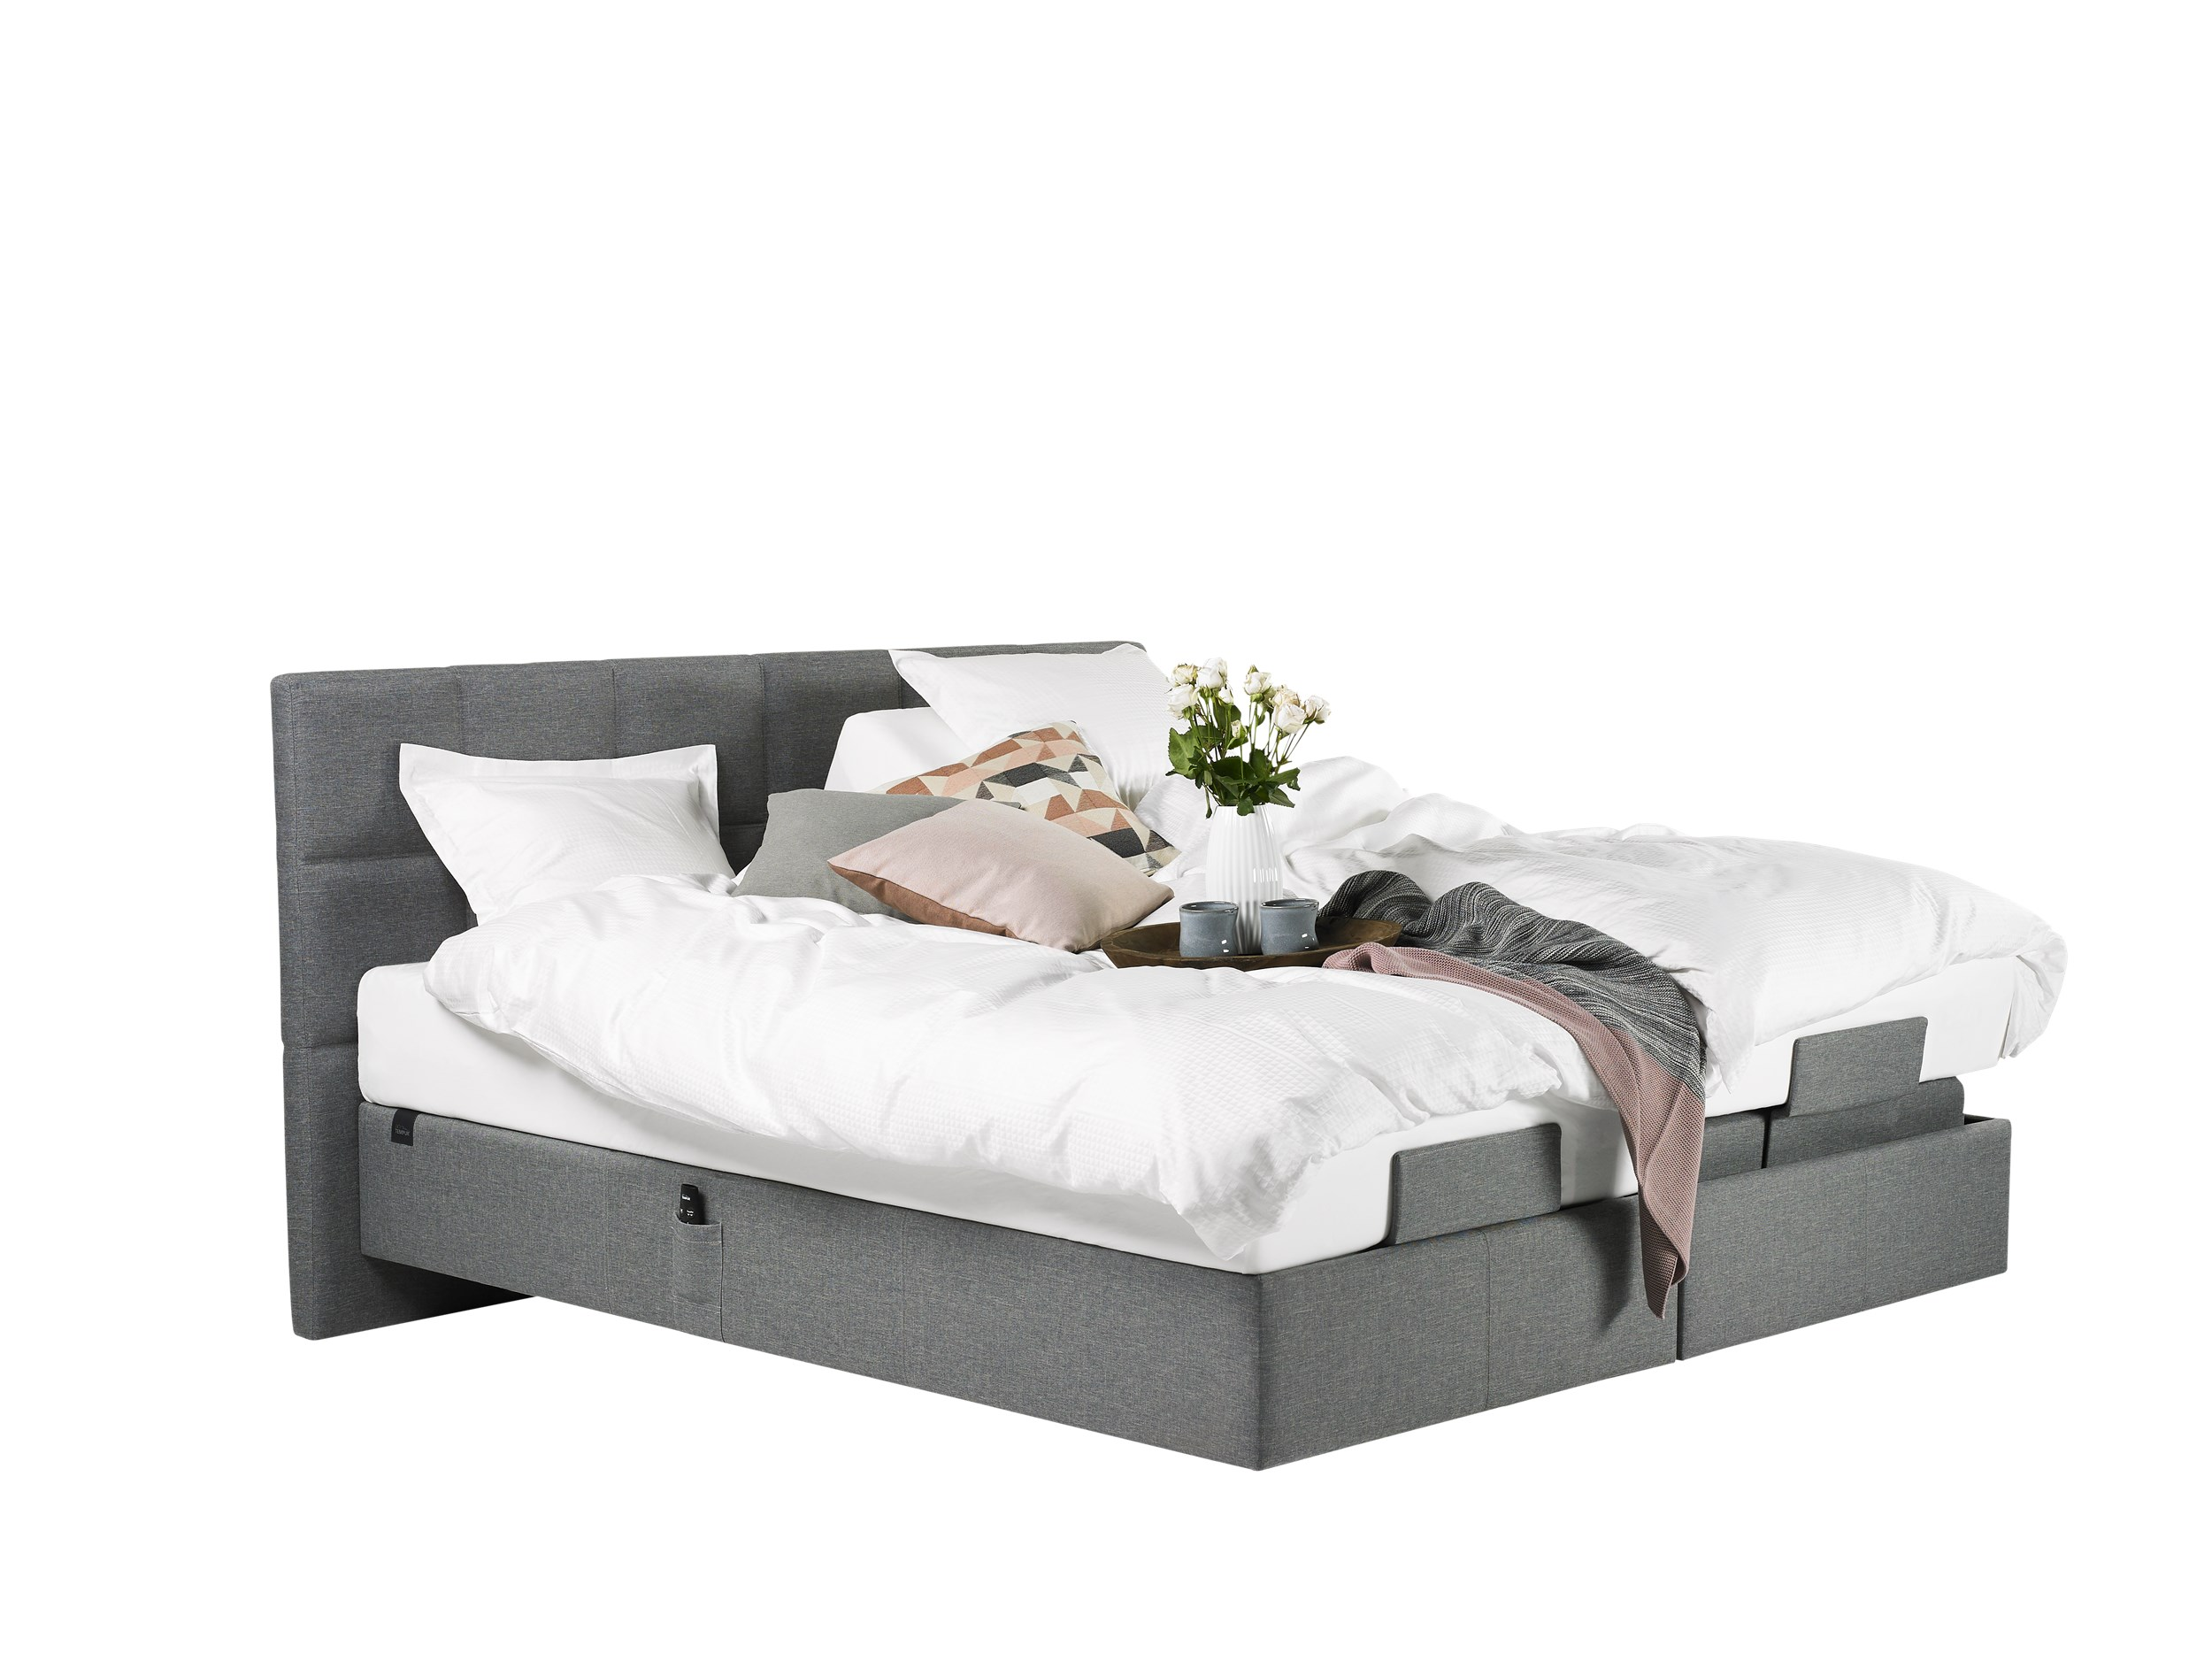 Tempur Spring Box Adjustable Elevationsseng 180 x 200 cm - Elevationsseng 180 x 200 cm